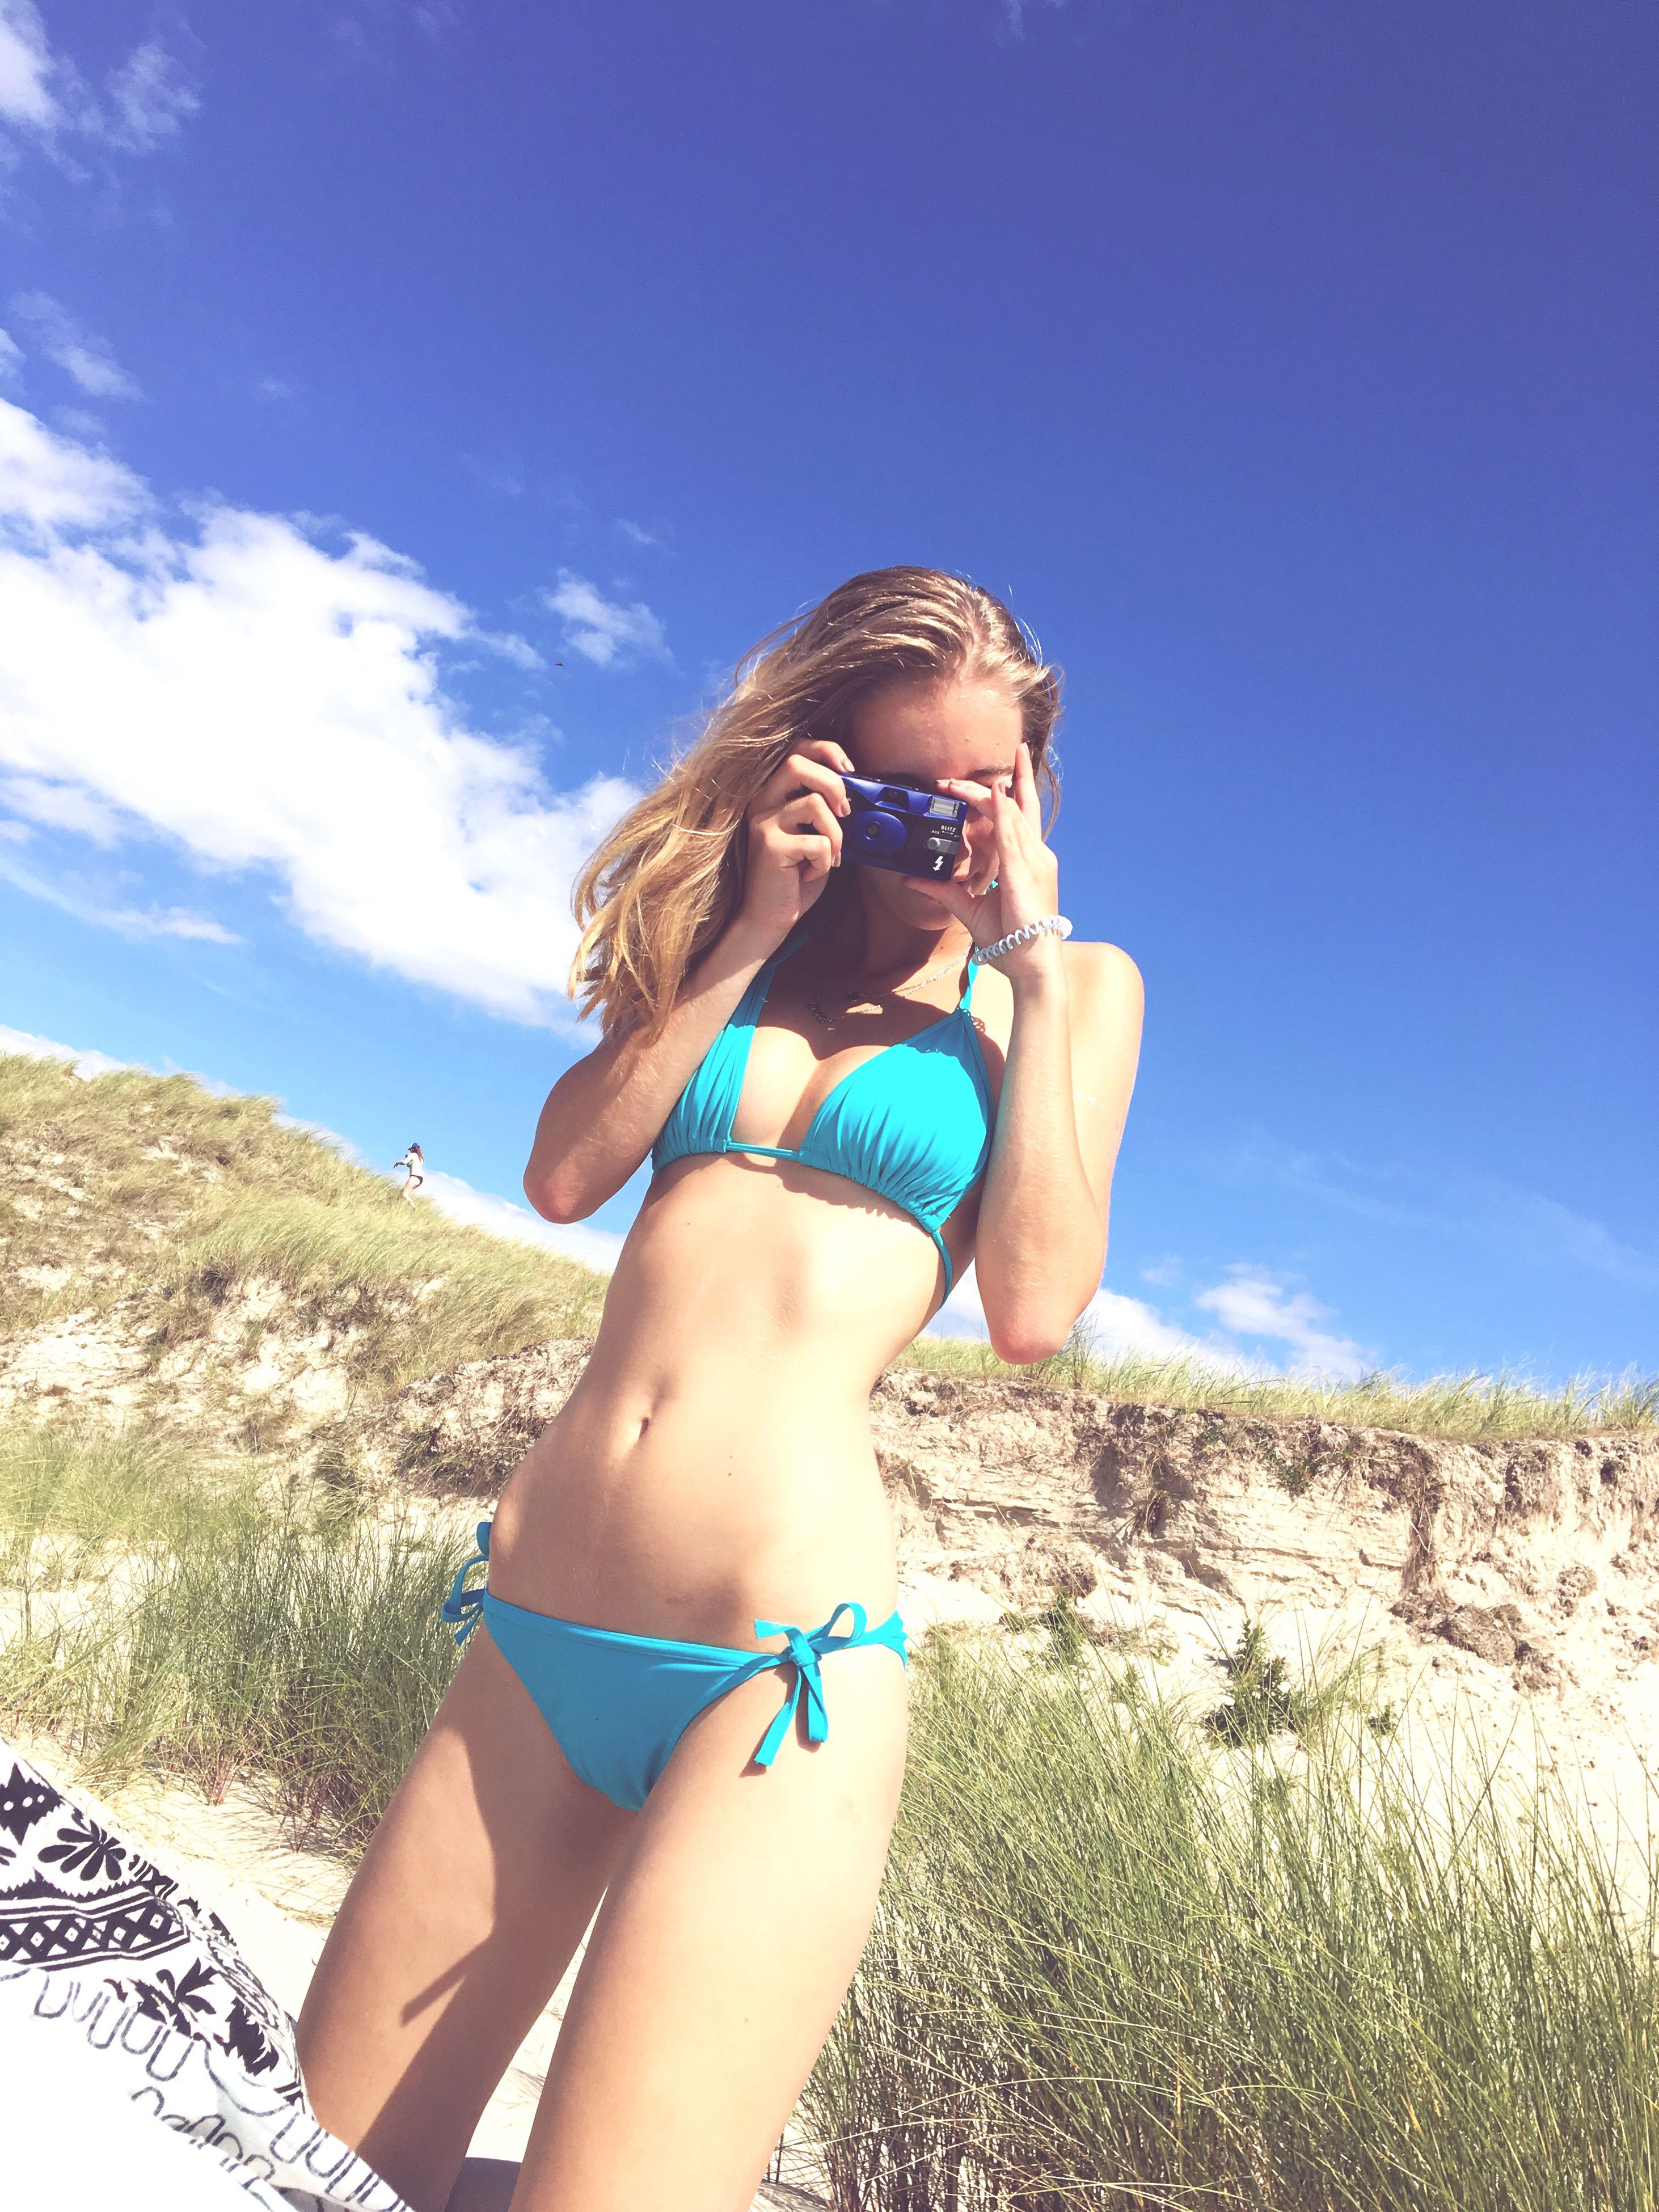 young women, young adult, sky, low angle view, person, leisure activity, lifestyles, sensuality, blue, summer, bikini, sunlight, sunny, femininity, relaxation, beauty, sunbathing, casual clothing, day, seductive woman, long hair, outdoors, nature, carefree